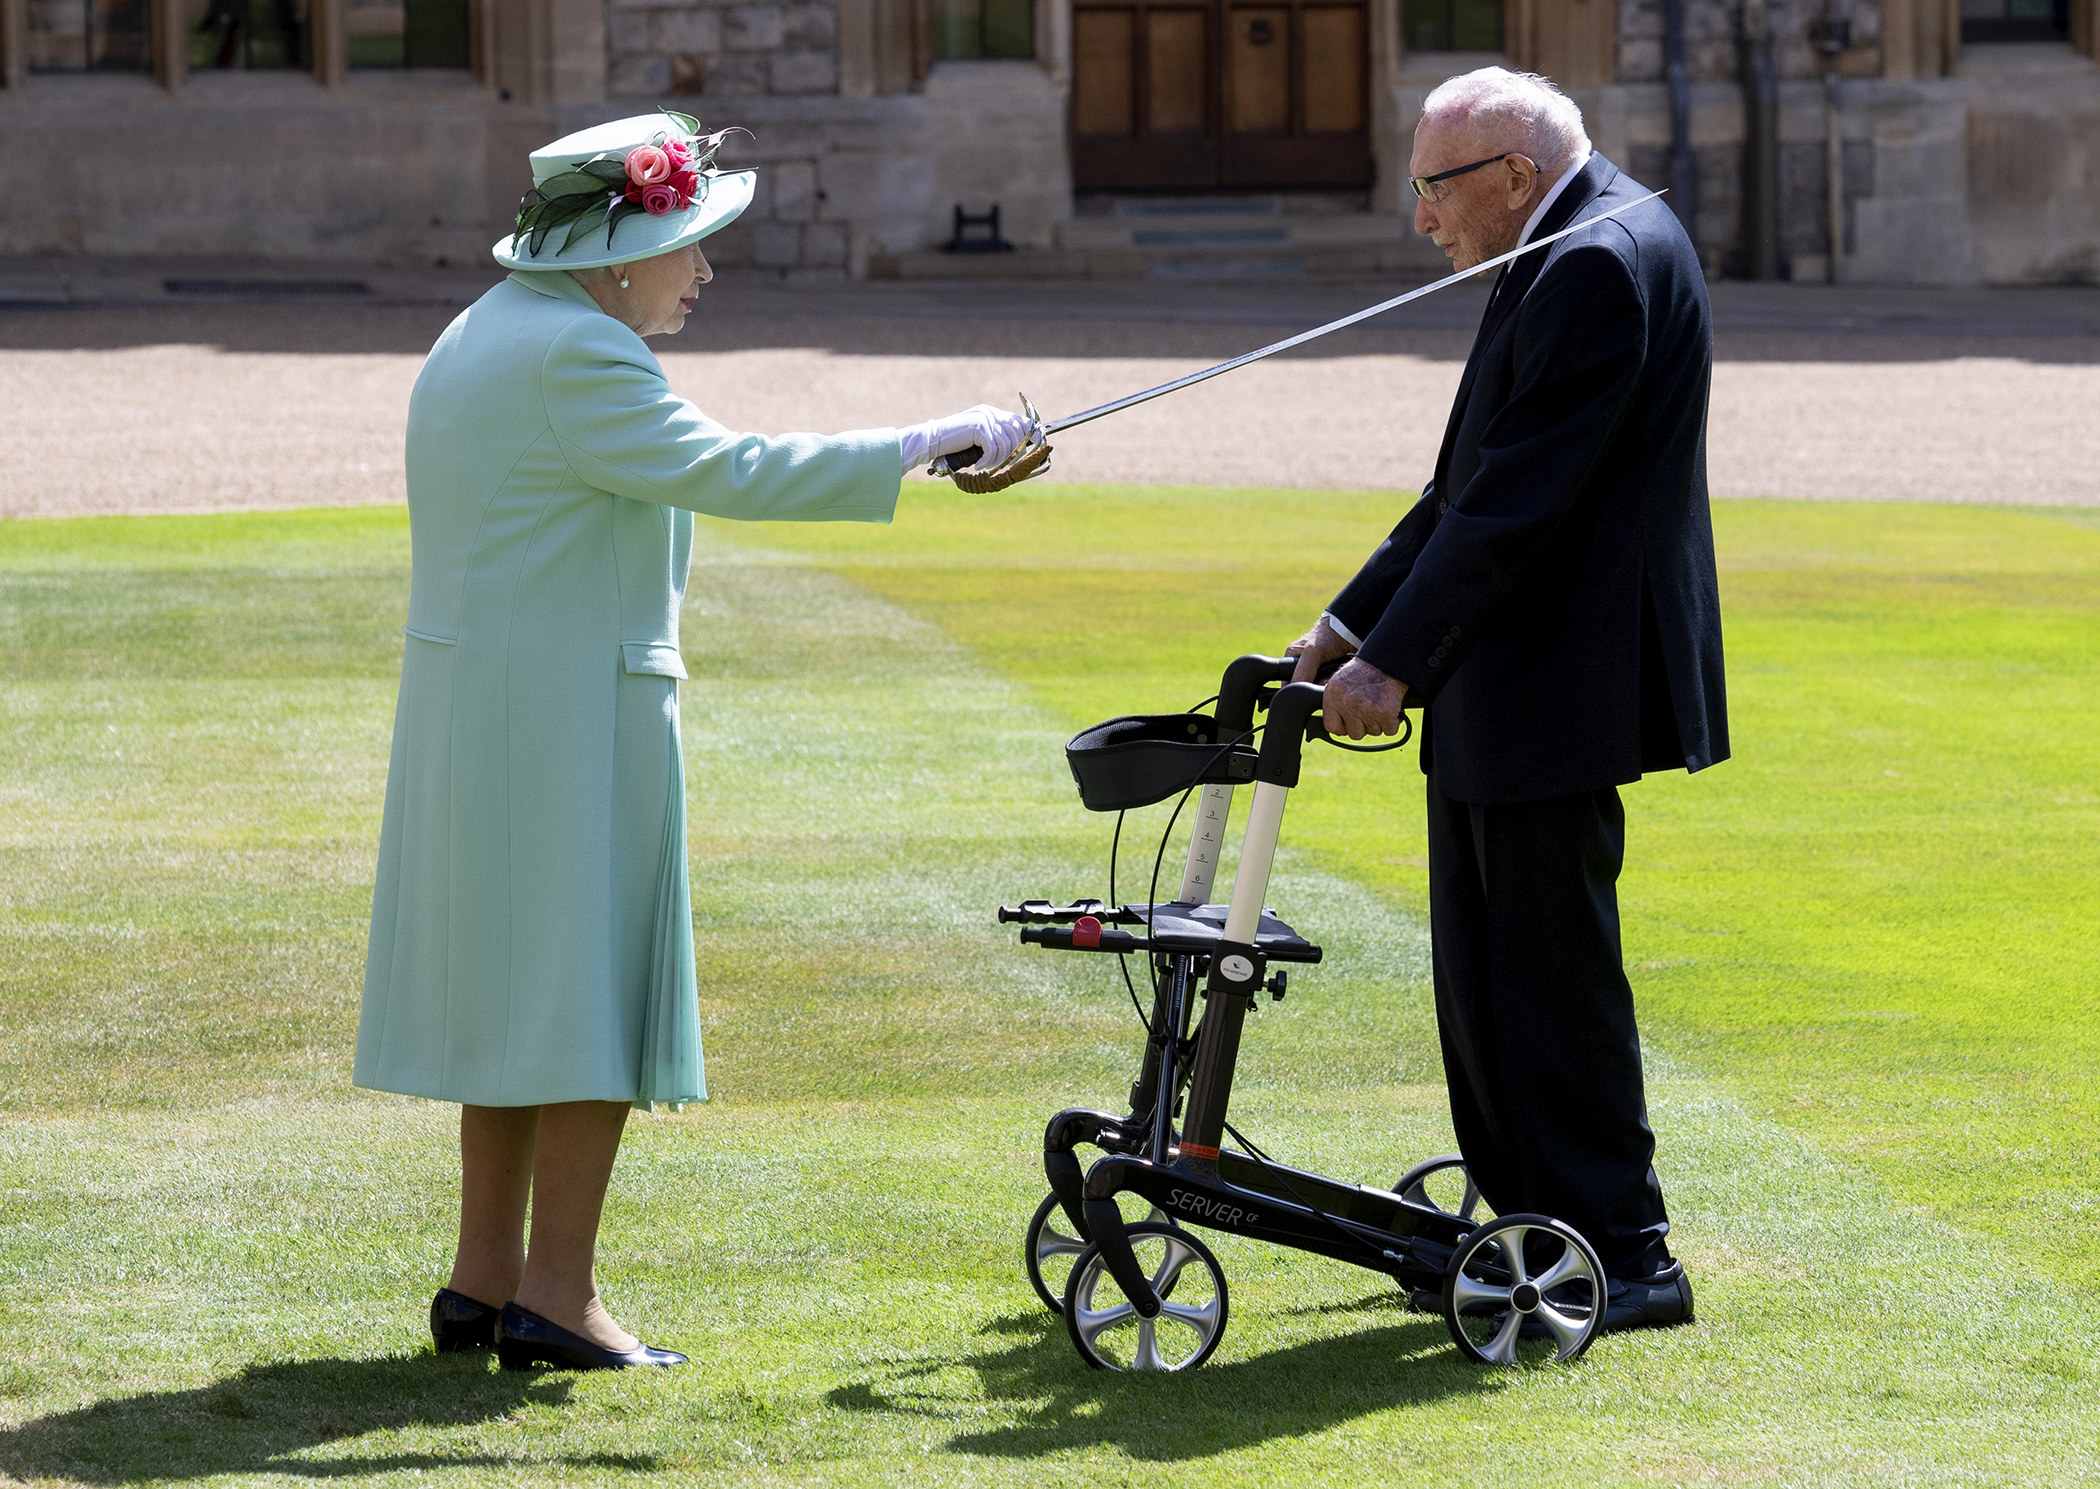 The Queen (left) uses a sword to tap the left shoulder of Sir Thomas Moore (right) as both stand on the grass